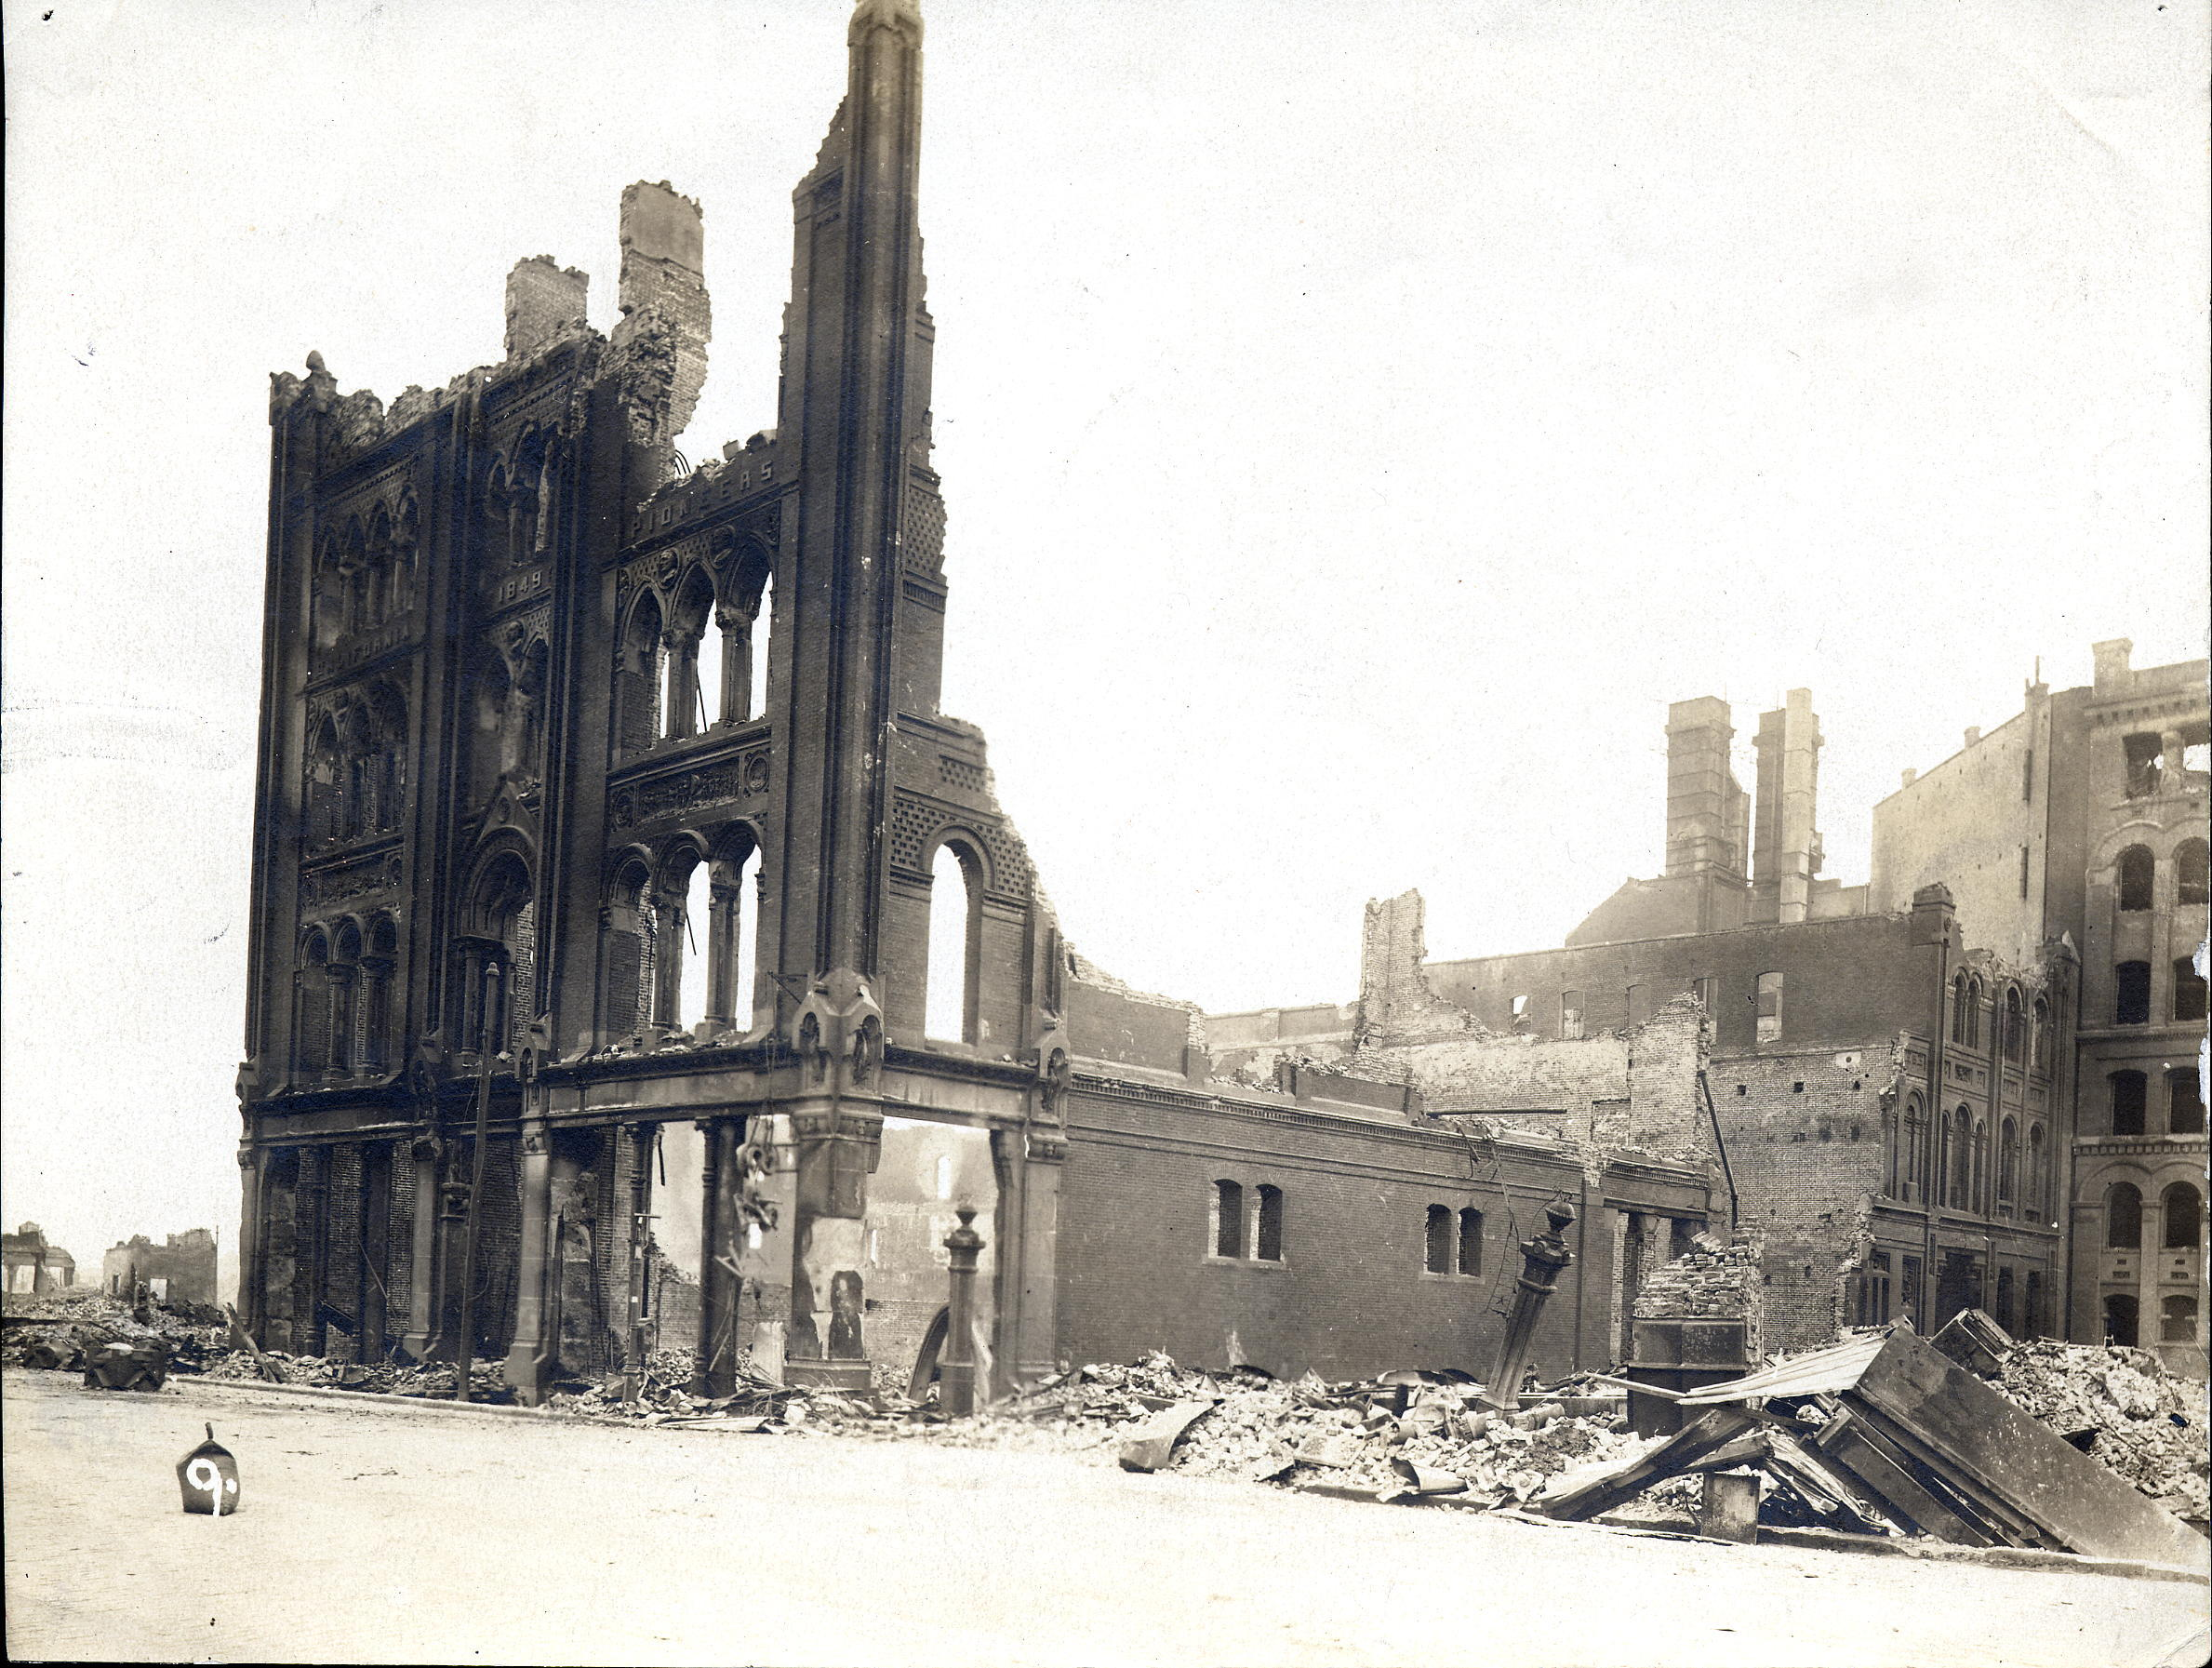 The 1886-1906 Pioneer Hall after the 1906 Earthquake (image from the Society of California Pioneers)